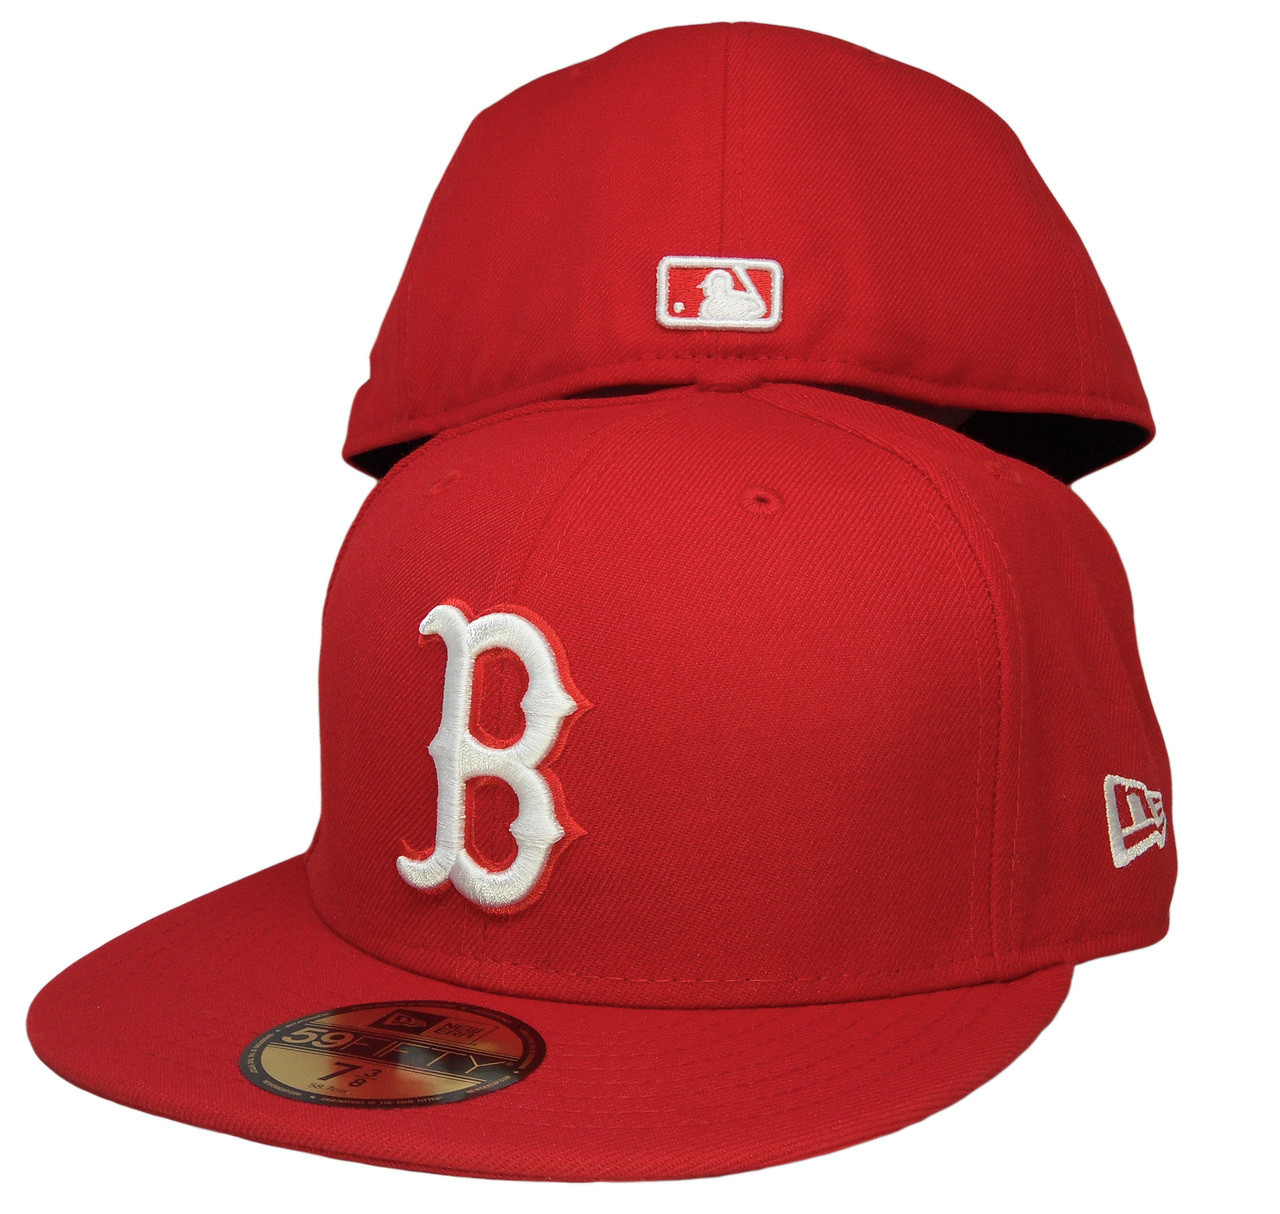 106547184ee Boston Red Sox New Era 59Fifty Basic Fitted Hat - Red